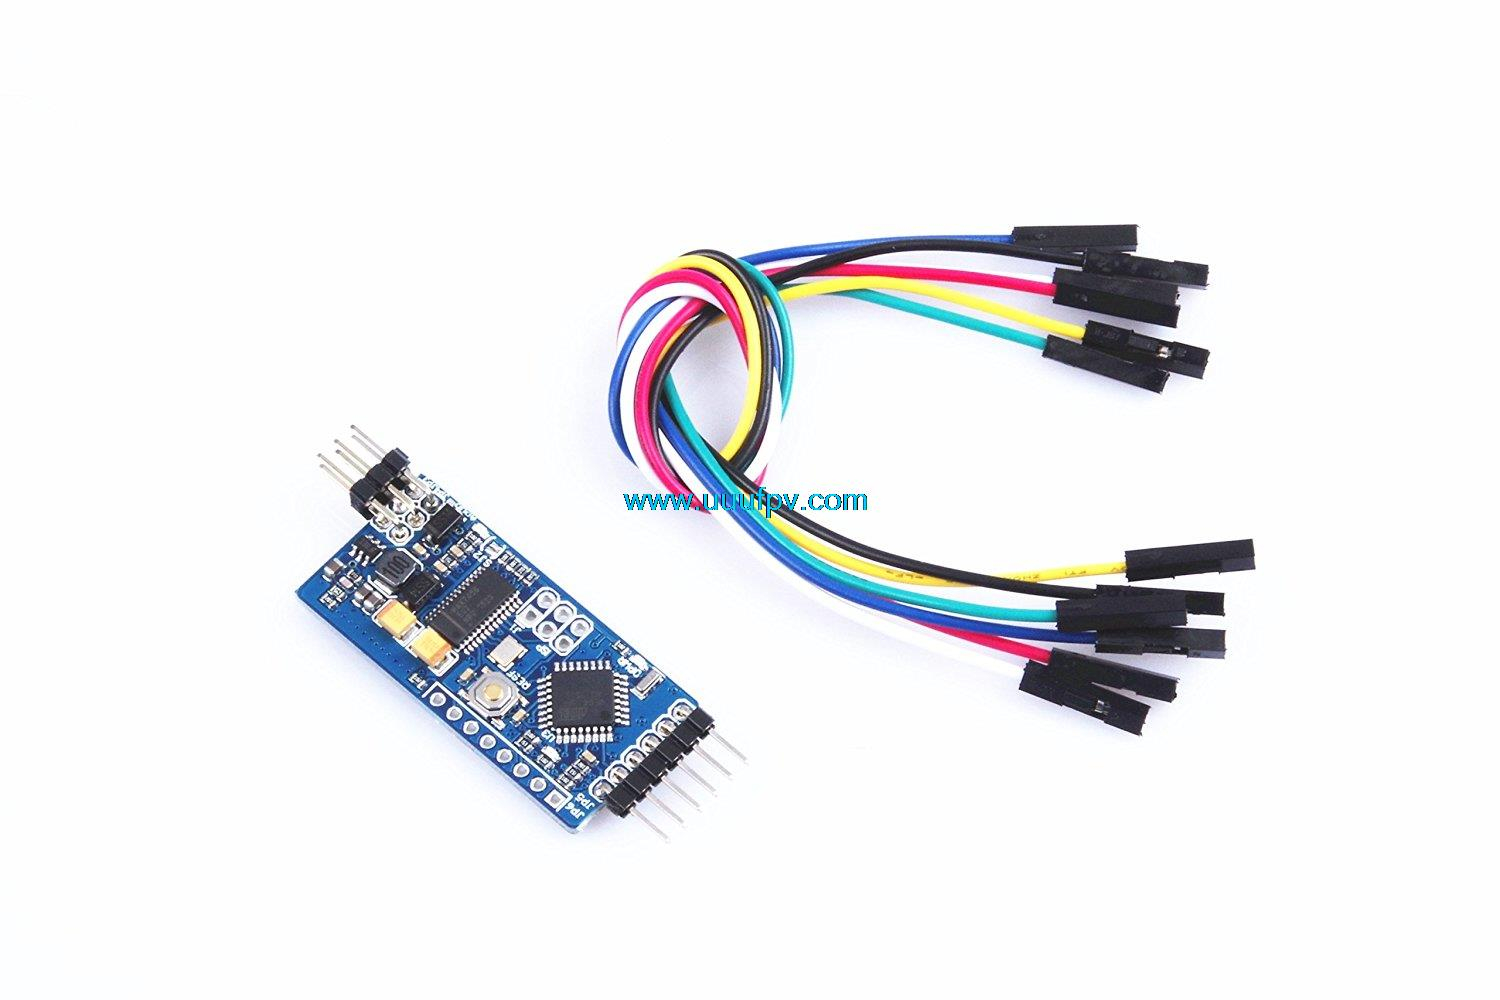 fpv camera APM OSD Mini OSD RC Flight Control Board V2.0 On-Screen Display MAVLink OSD support APM2.8 APM 2.6 APM 2.52 minimosd on screen display osd board apm telemetry to apm 1 and apm 2